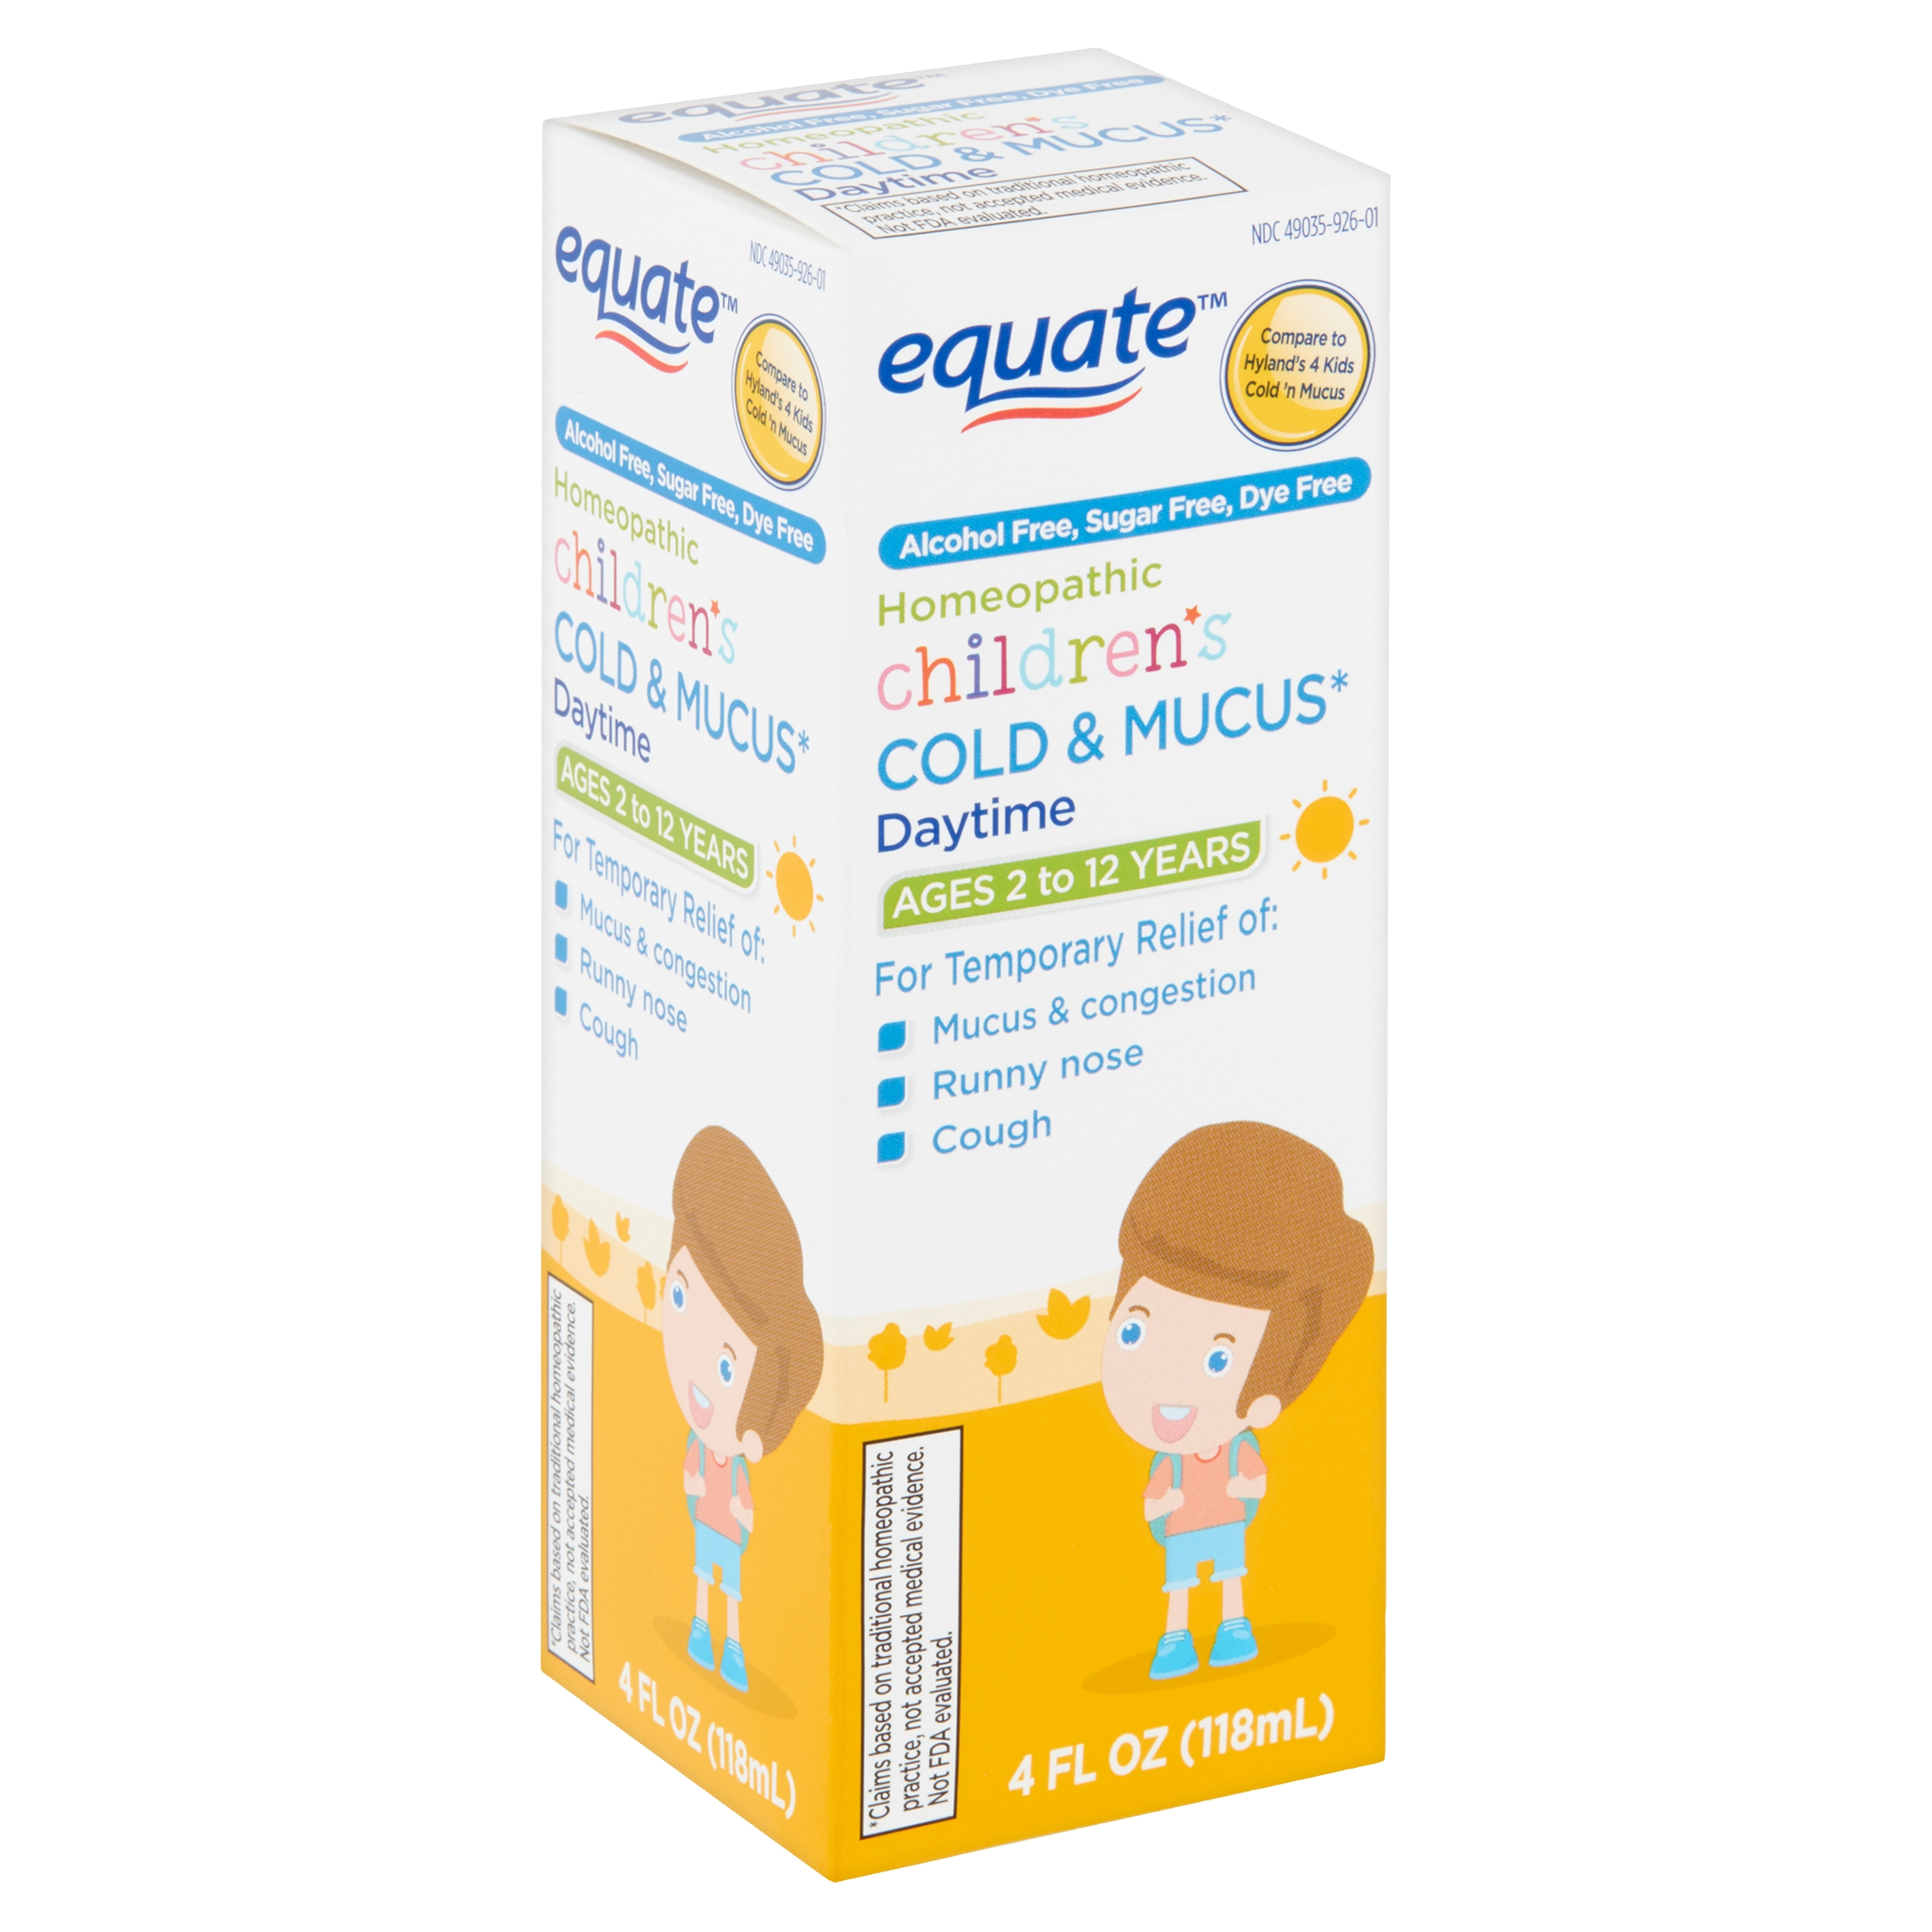 Equate Homeopathic Children's Daytime Cold & Mucus Liquid, Ages 2 to 12 Years, 4 fl oz